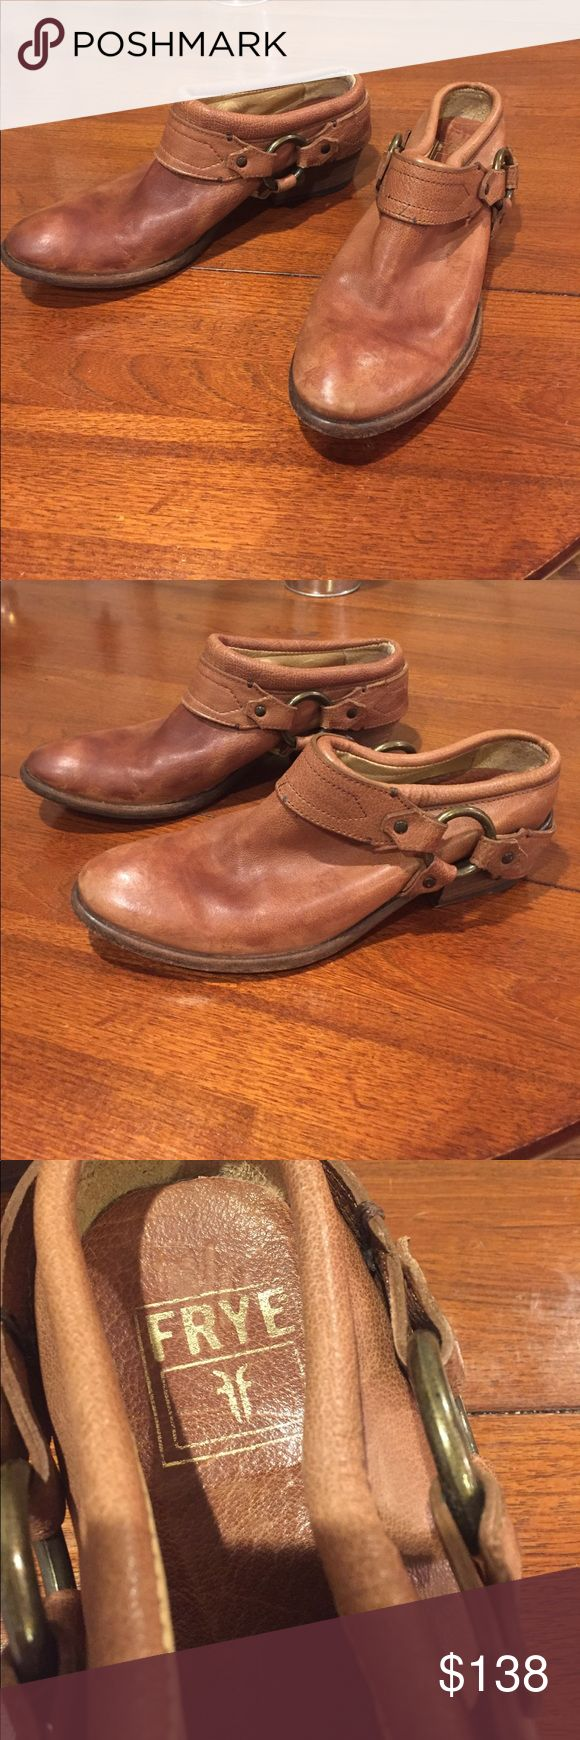 25 Best Ideas About Frye Shoes On Pinterest Brown